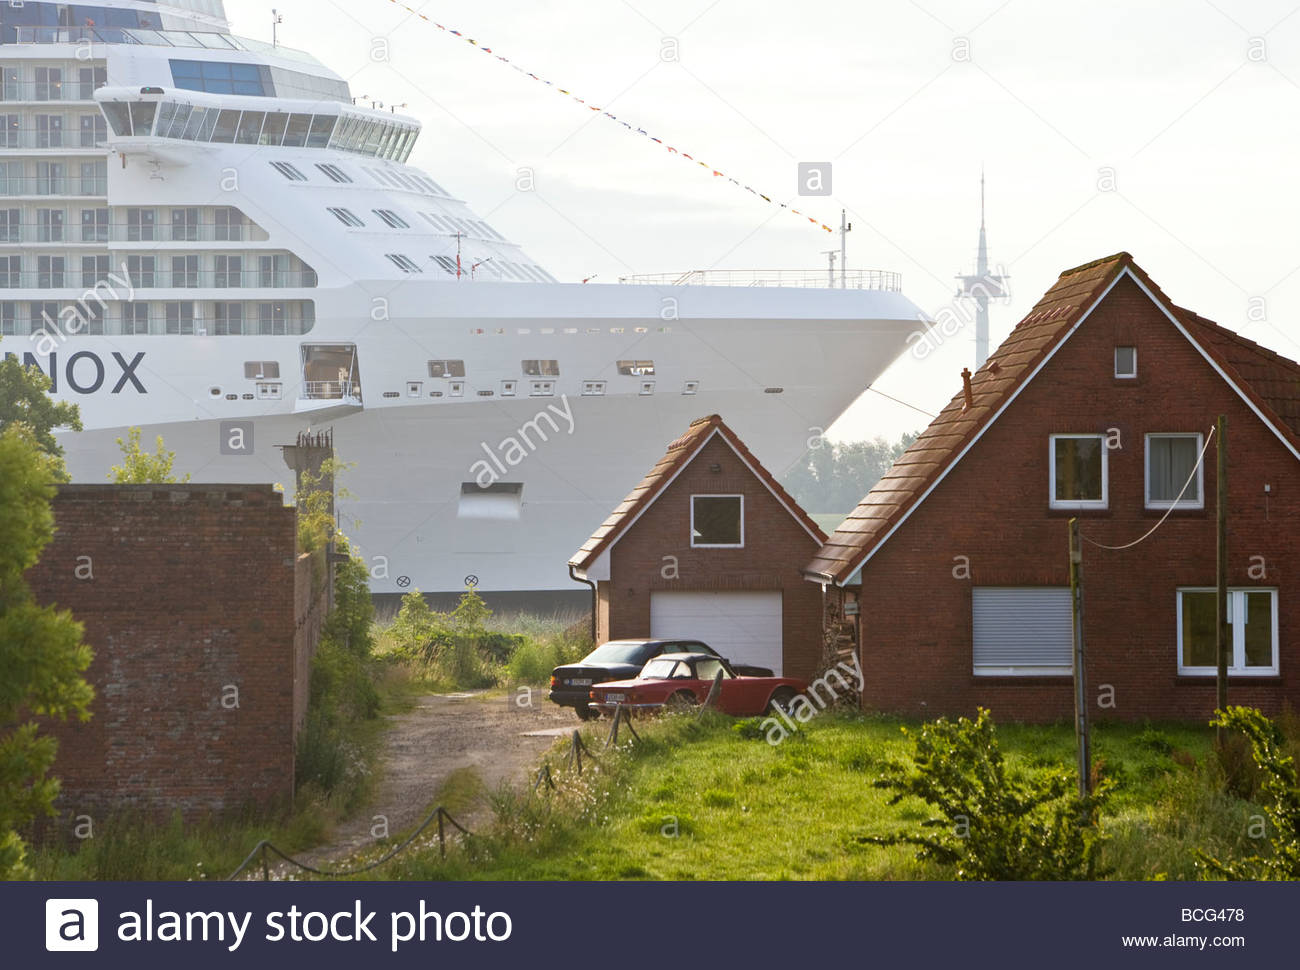 Huge Luxury Cruise Ship Towage Rural Brick House Backyard River Bank  Papenburg Ems River East Frisia Lower Saxony Germany Europe